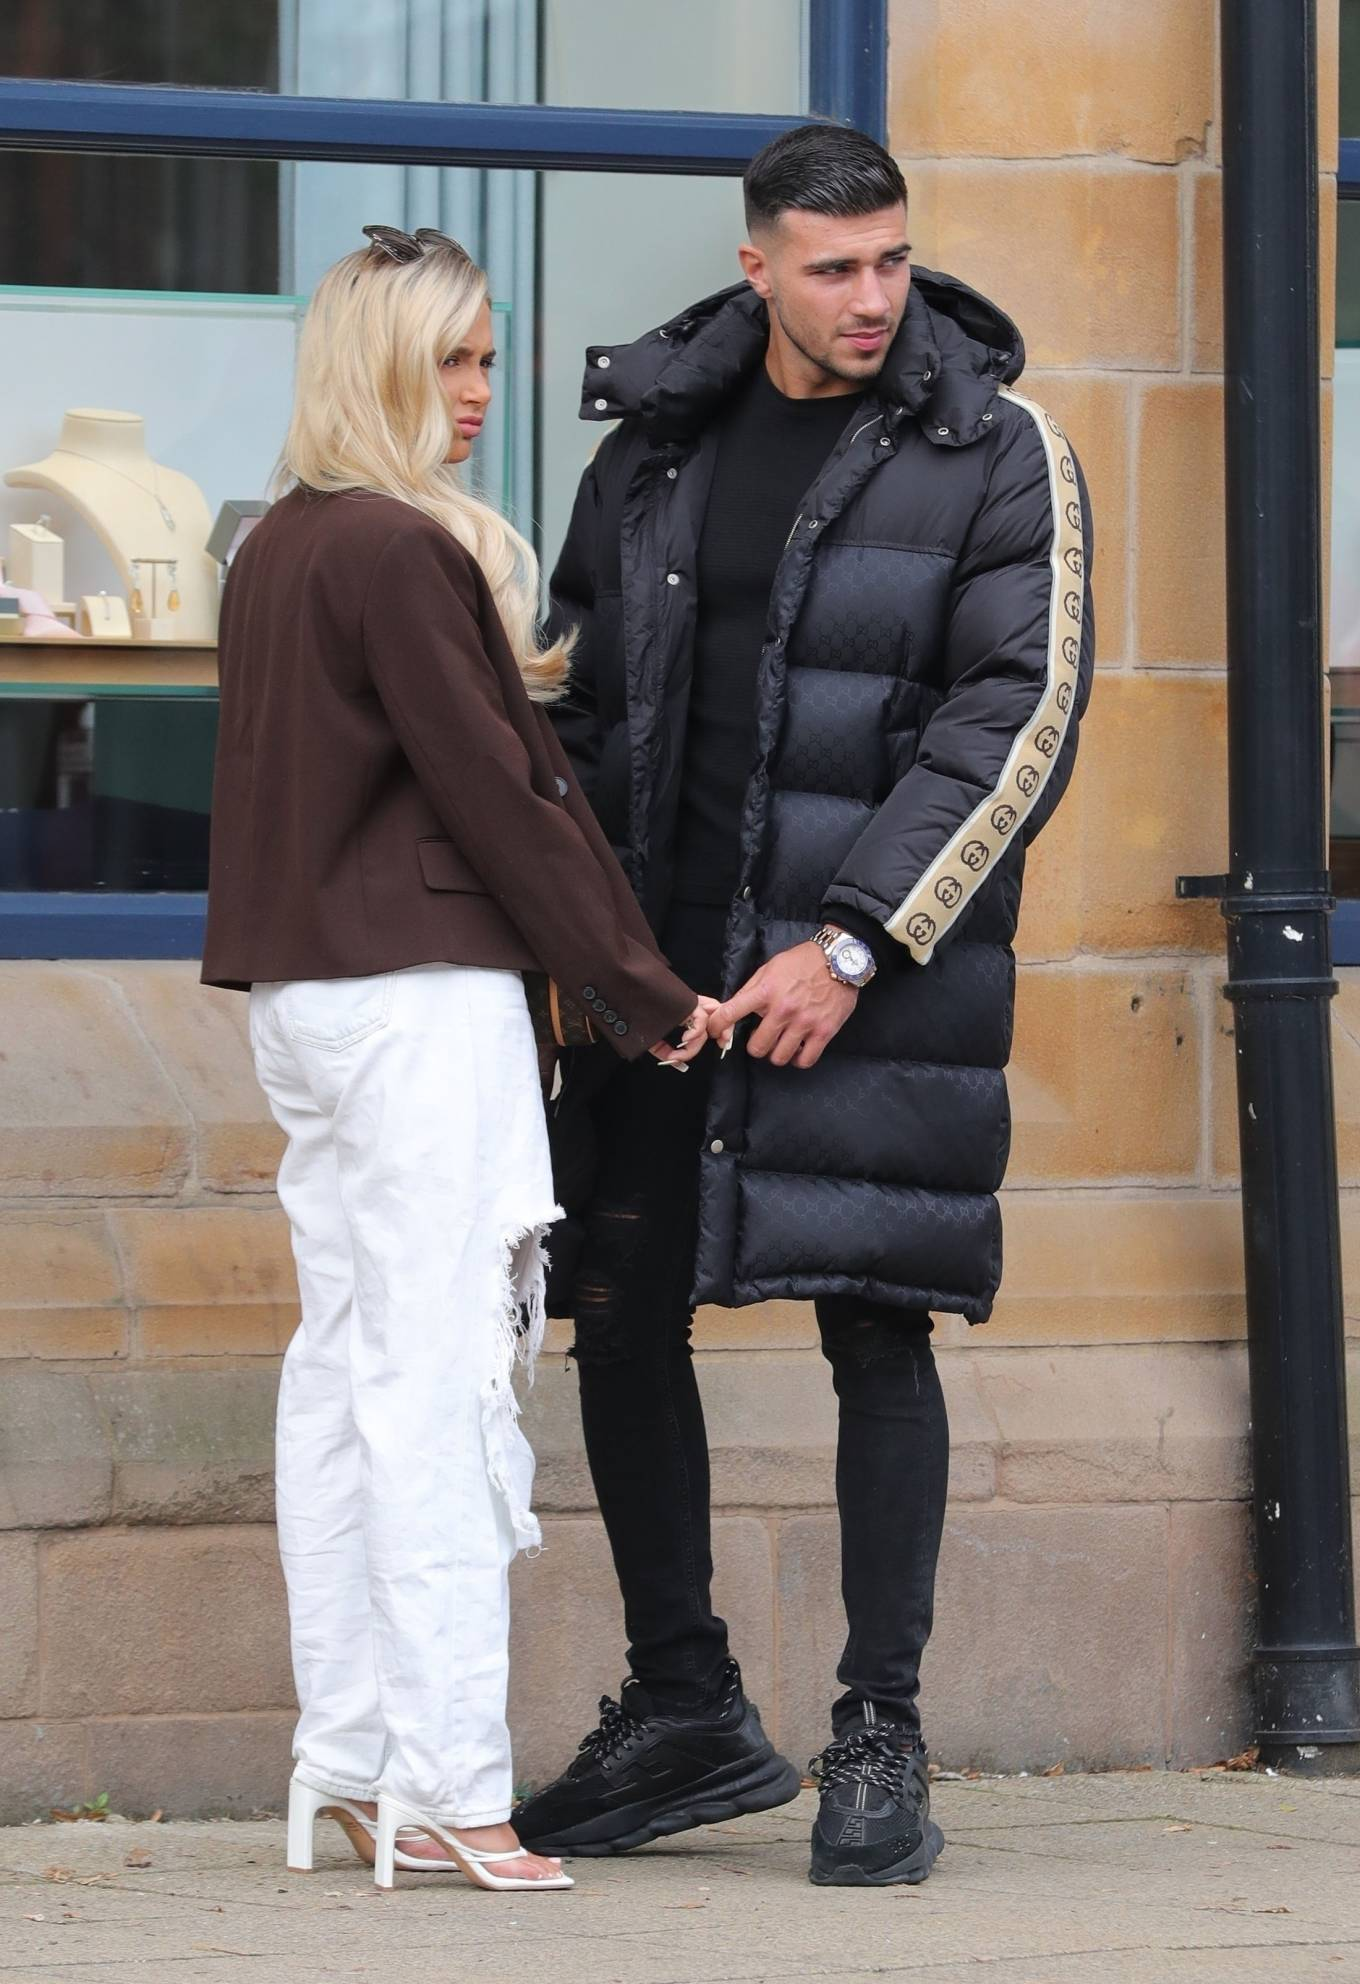 Molly-Mae Hague 2020 : Molly-Mae Hague and Tommy Fury – Seen while out in Cheshire -20